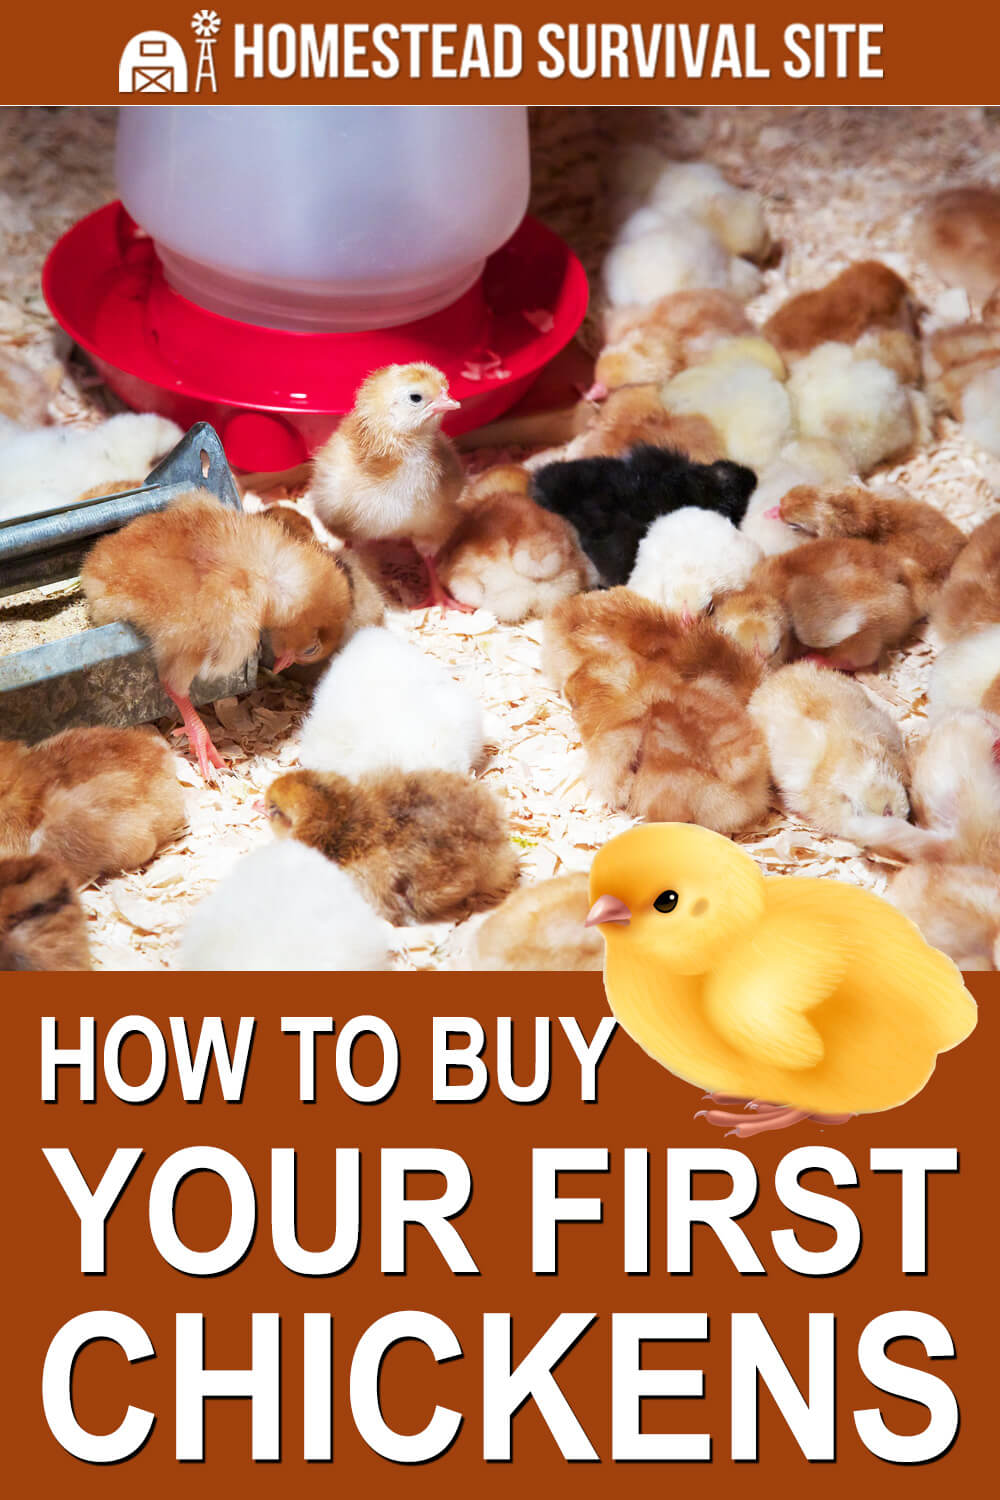 How to Buy Your First Chickens